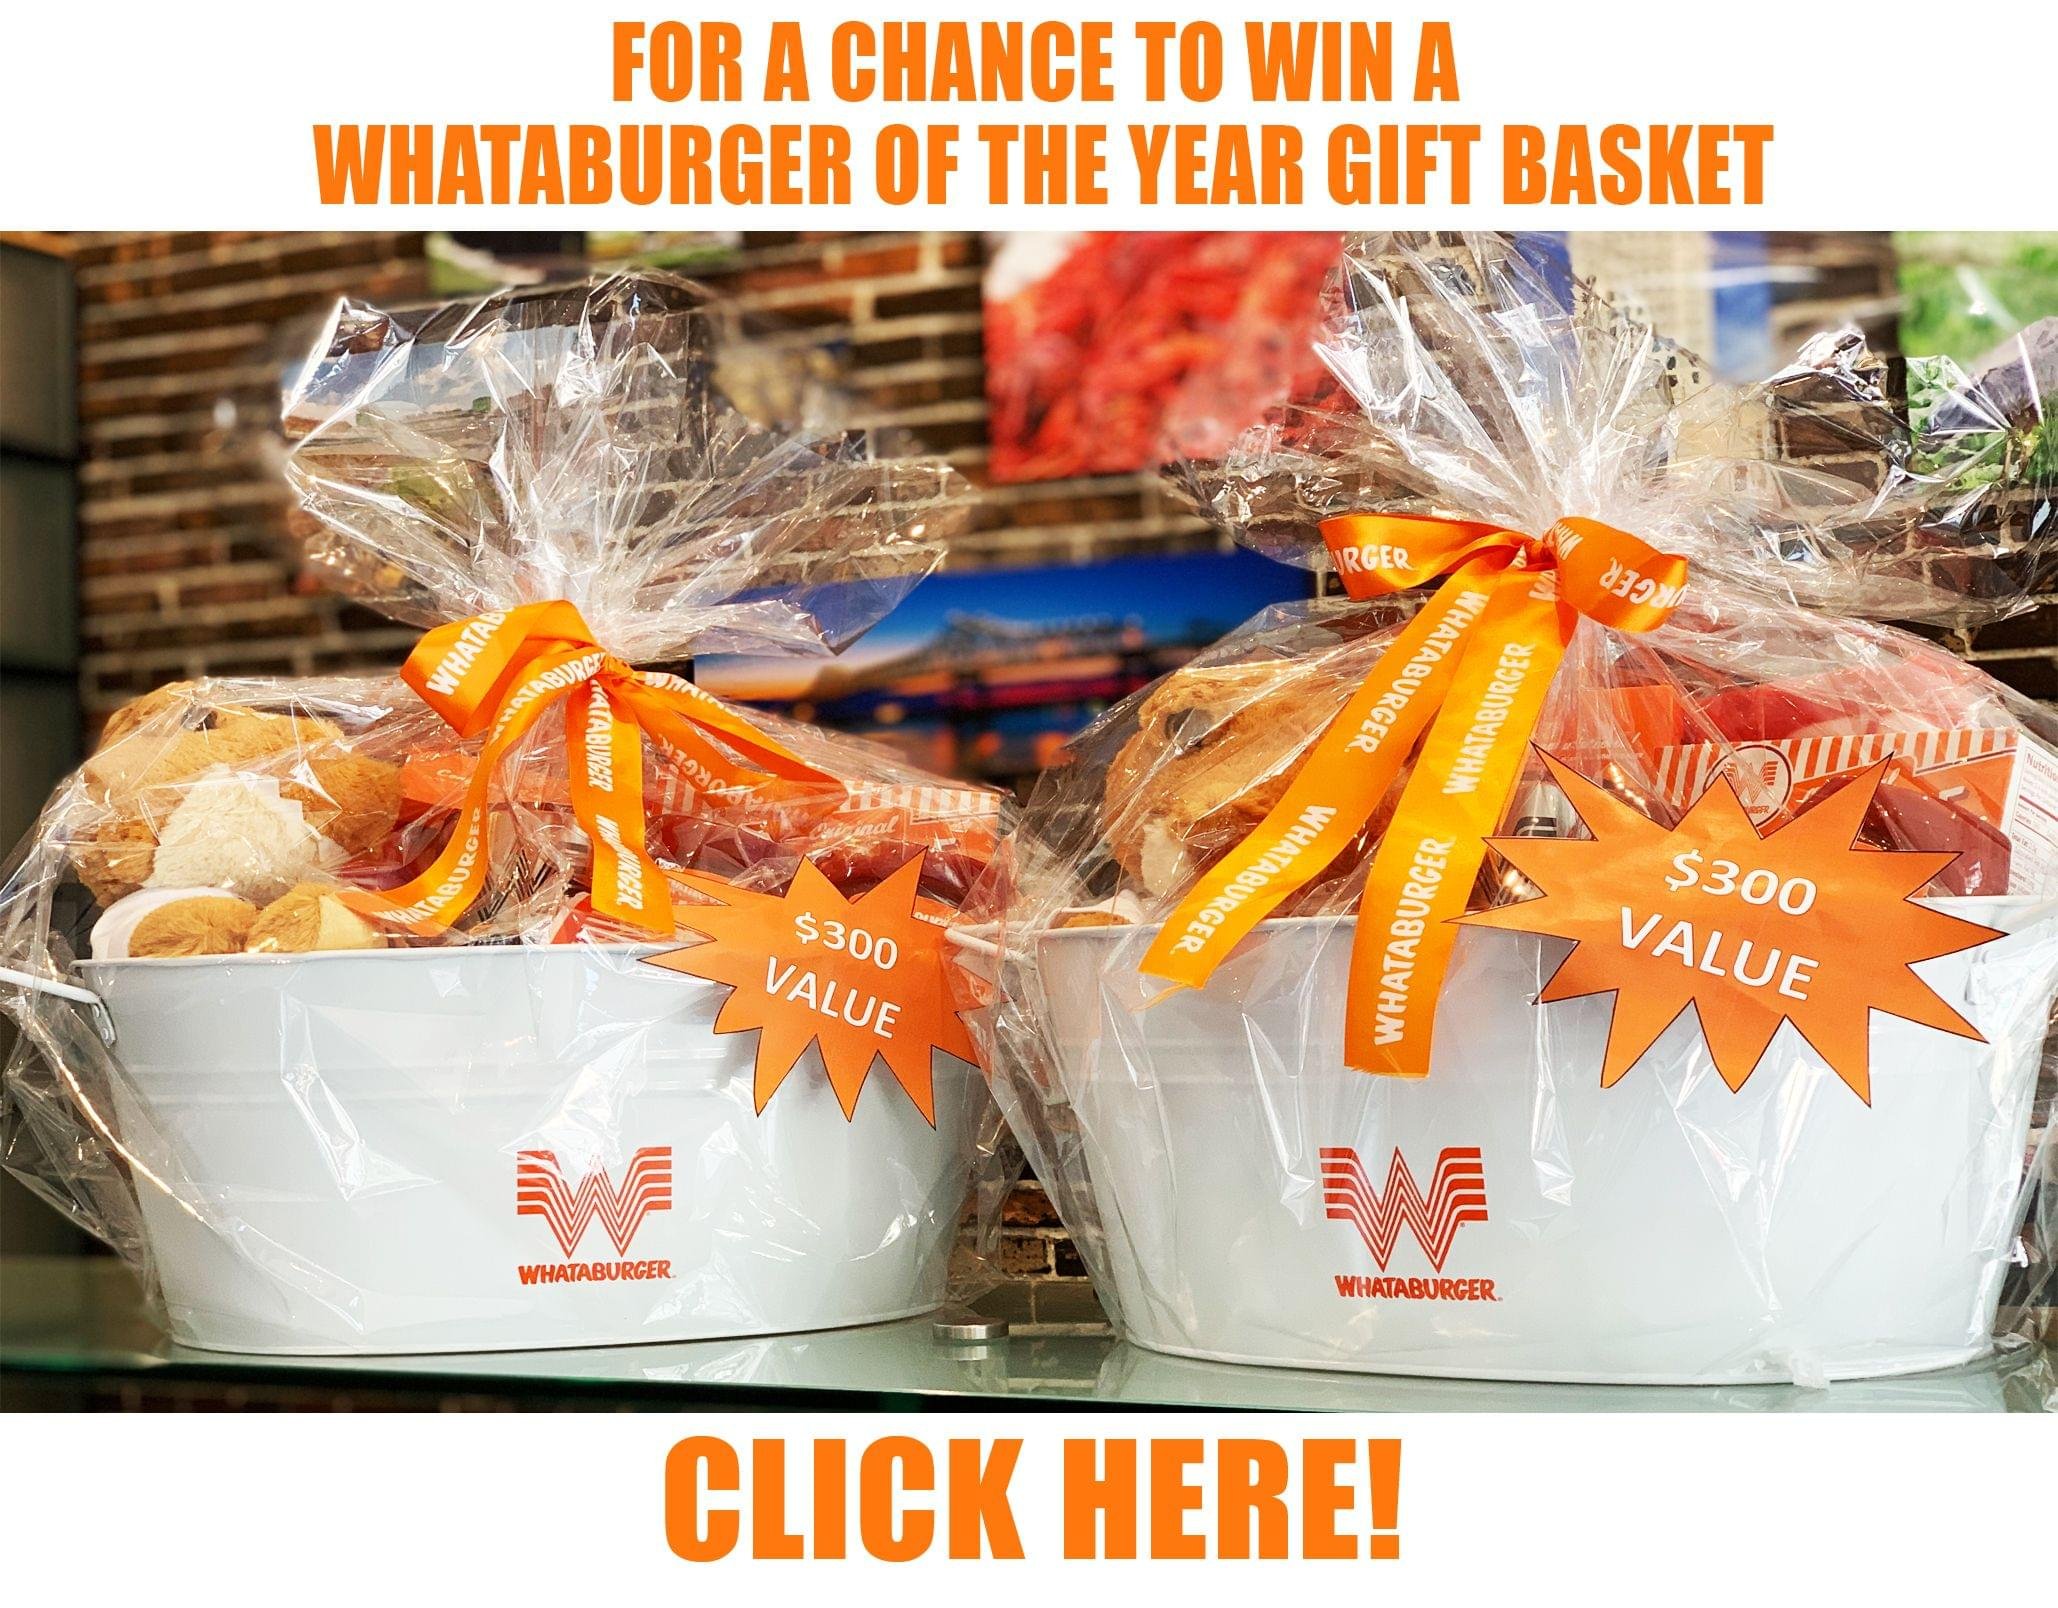 Win a WHATABURGER OF THE YEAR Gift Basket